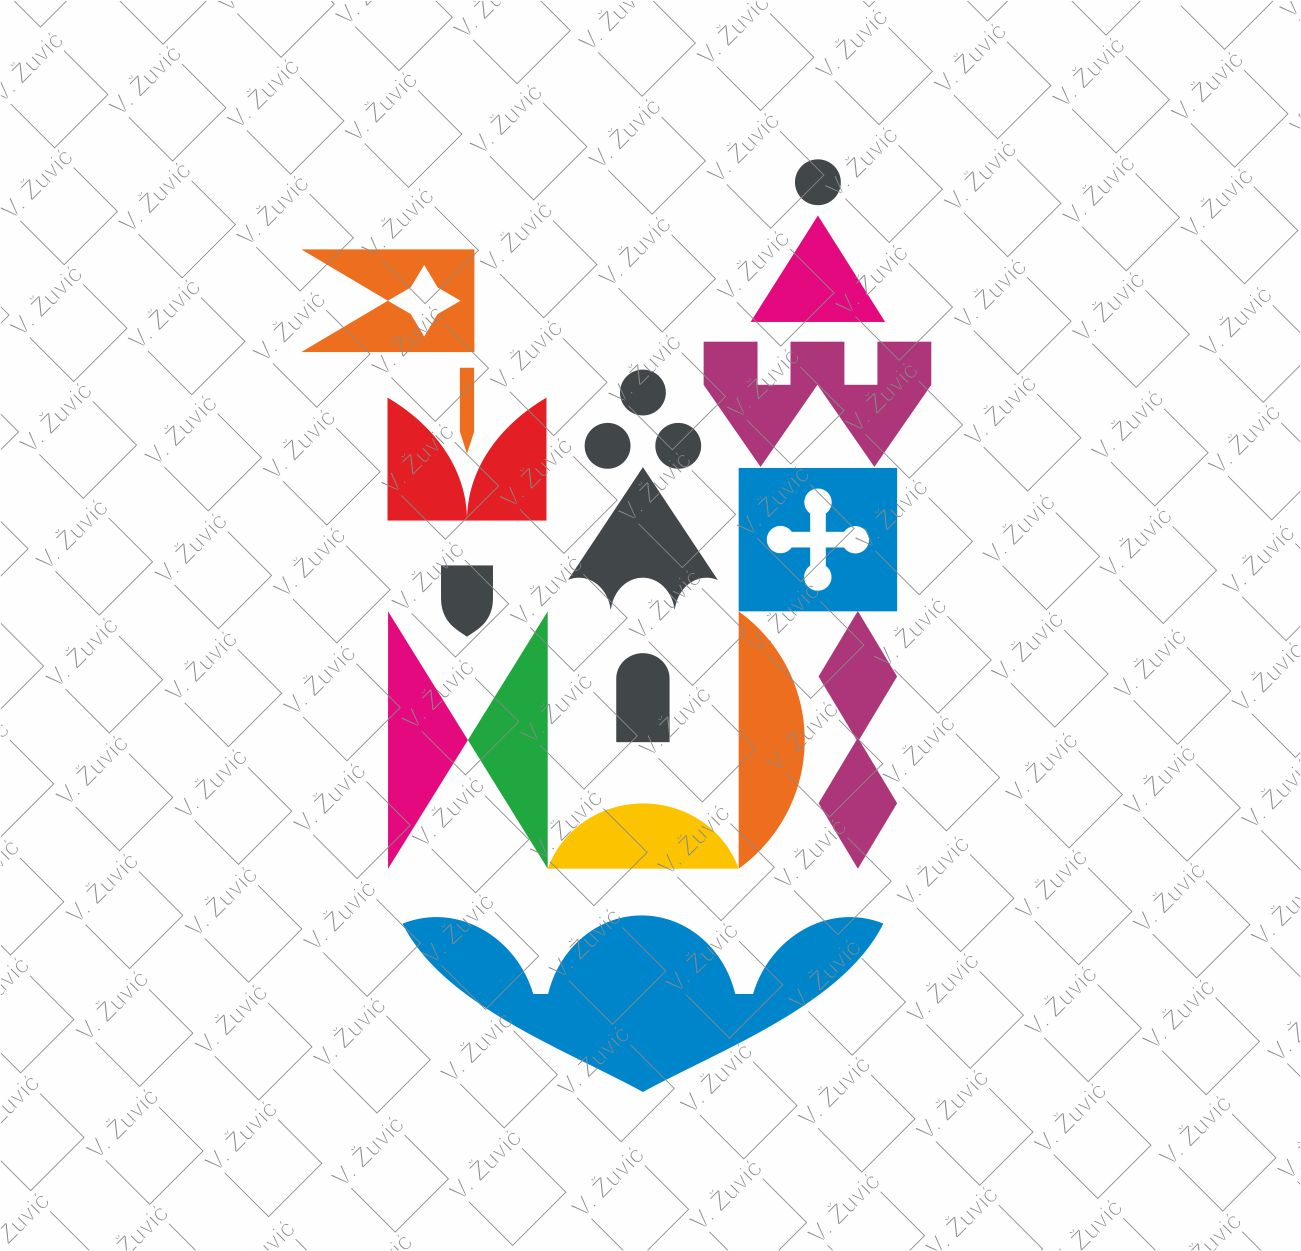 Logo is available for sale. Children medieval castle logo design.   Logotip je dostupan za prodaju. Dizajn logotipa - dječji zamak.